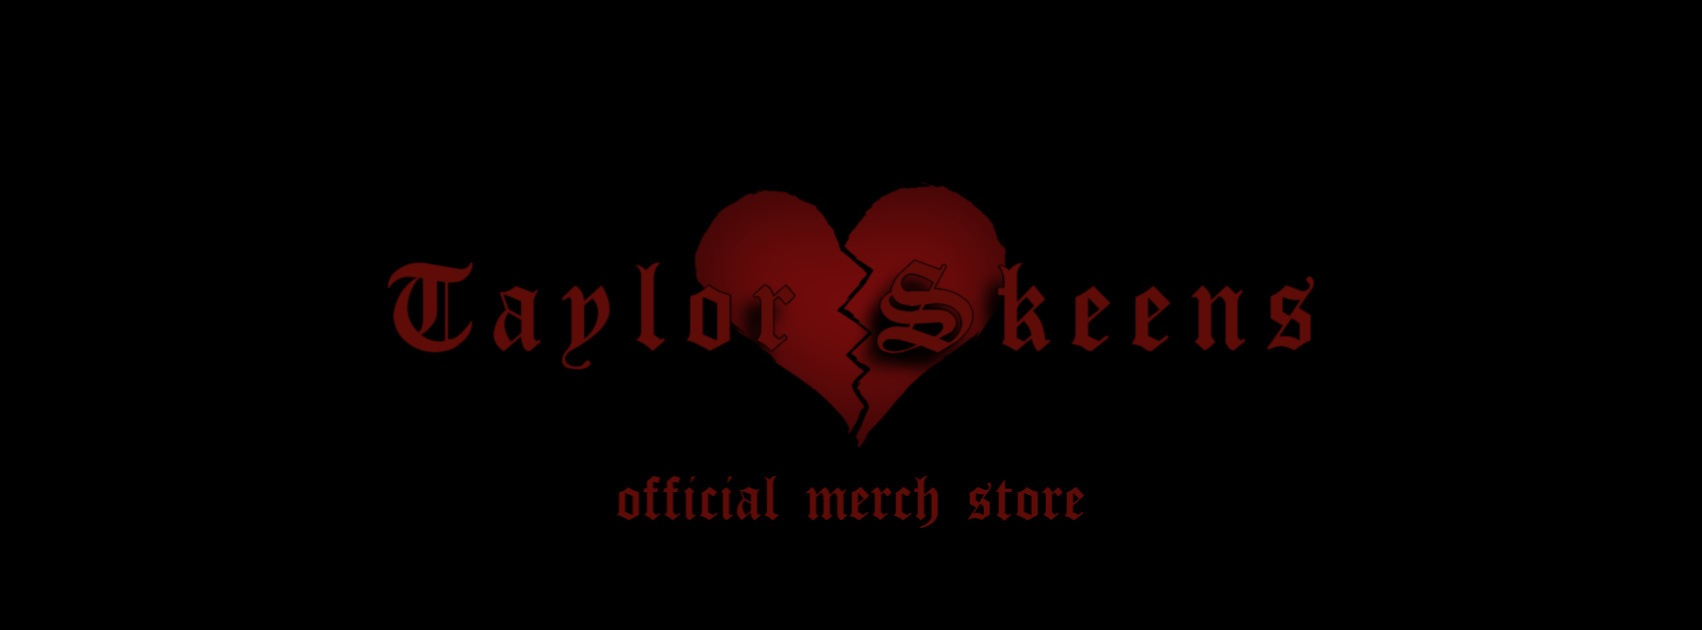 TAYLOR SKEENS OFFICIAL STORE Store